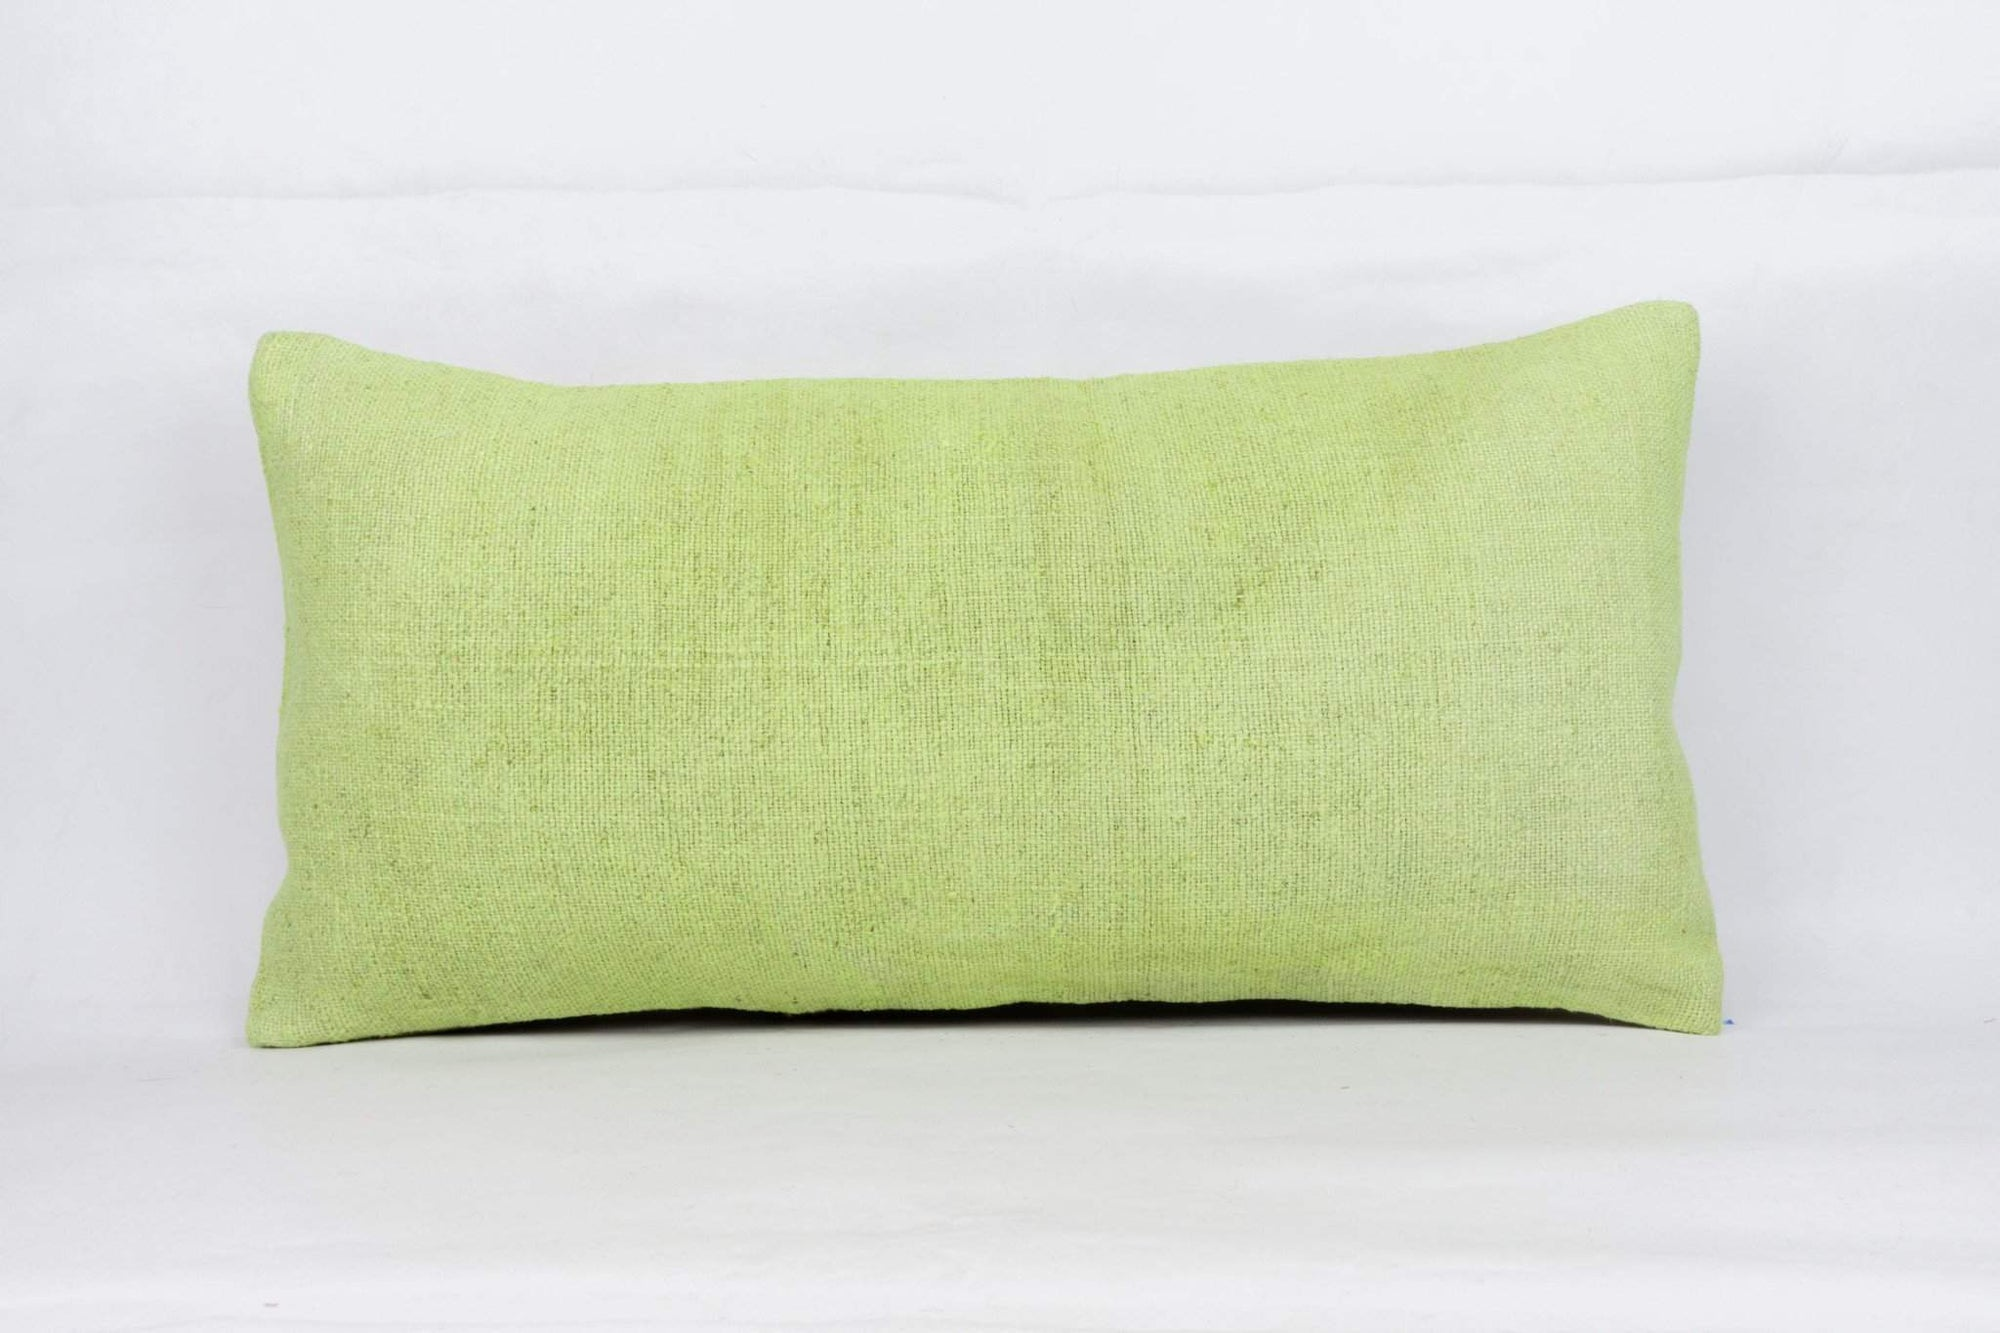 Plain Green Kilim Pillow Cover 12x24 4125 - kilimpillowstore  - 1